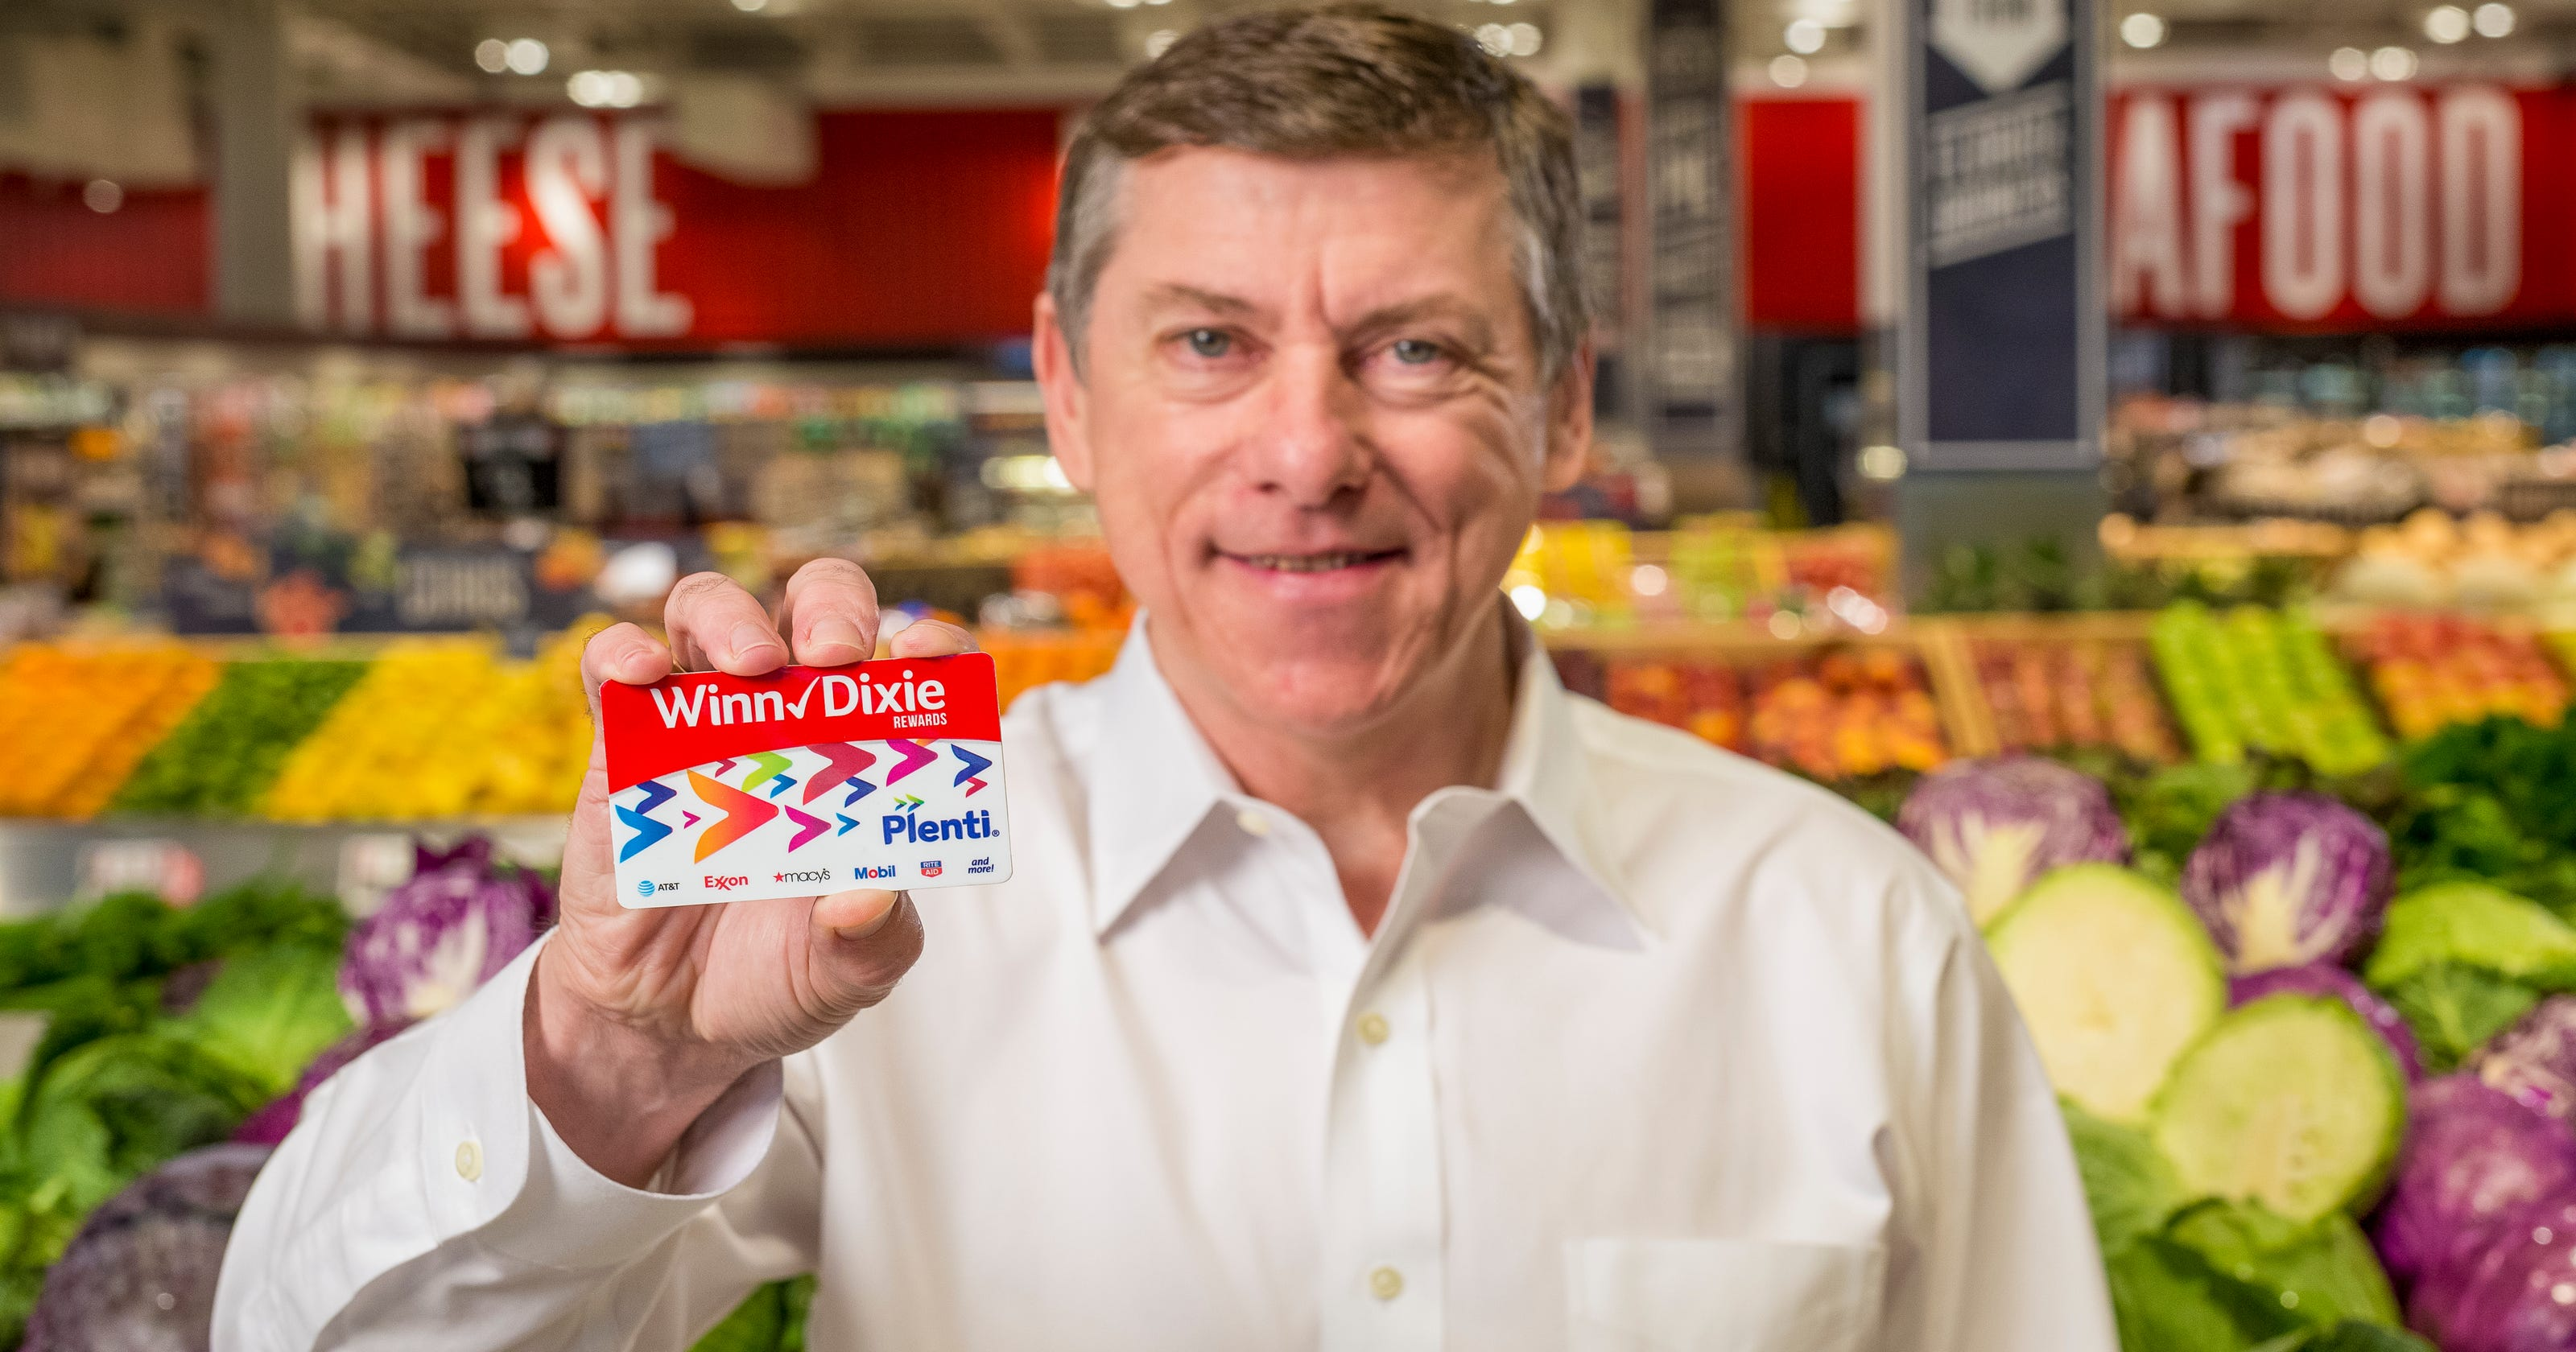 New Winn-Dixie program: Buy gas, get free groceries